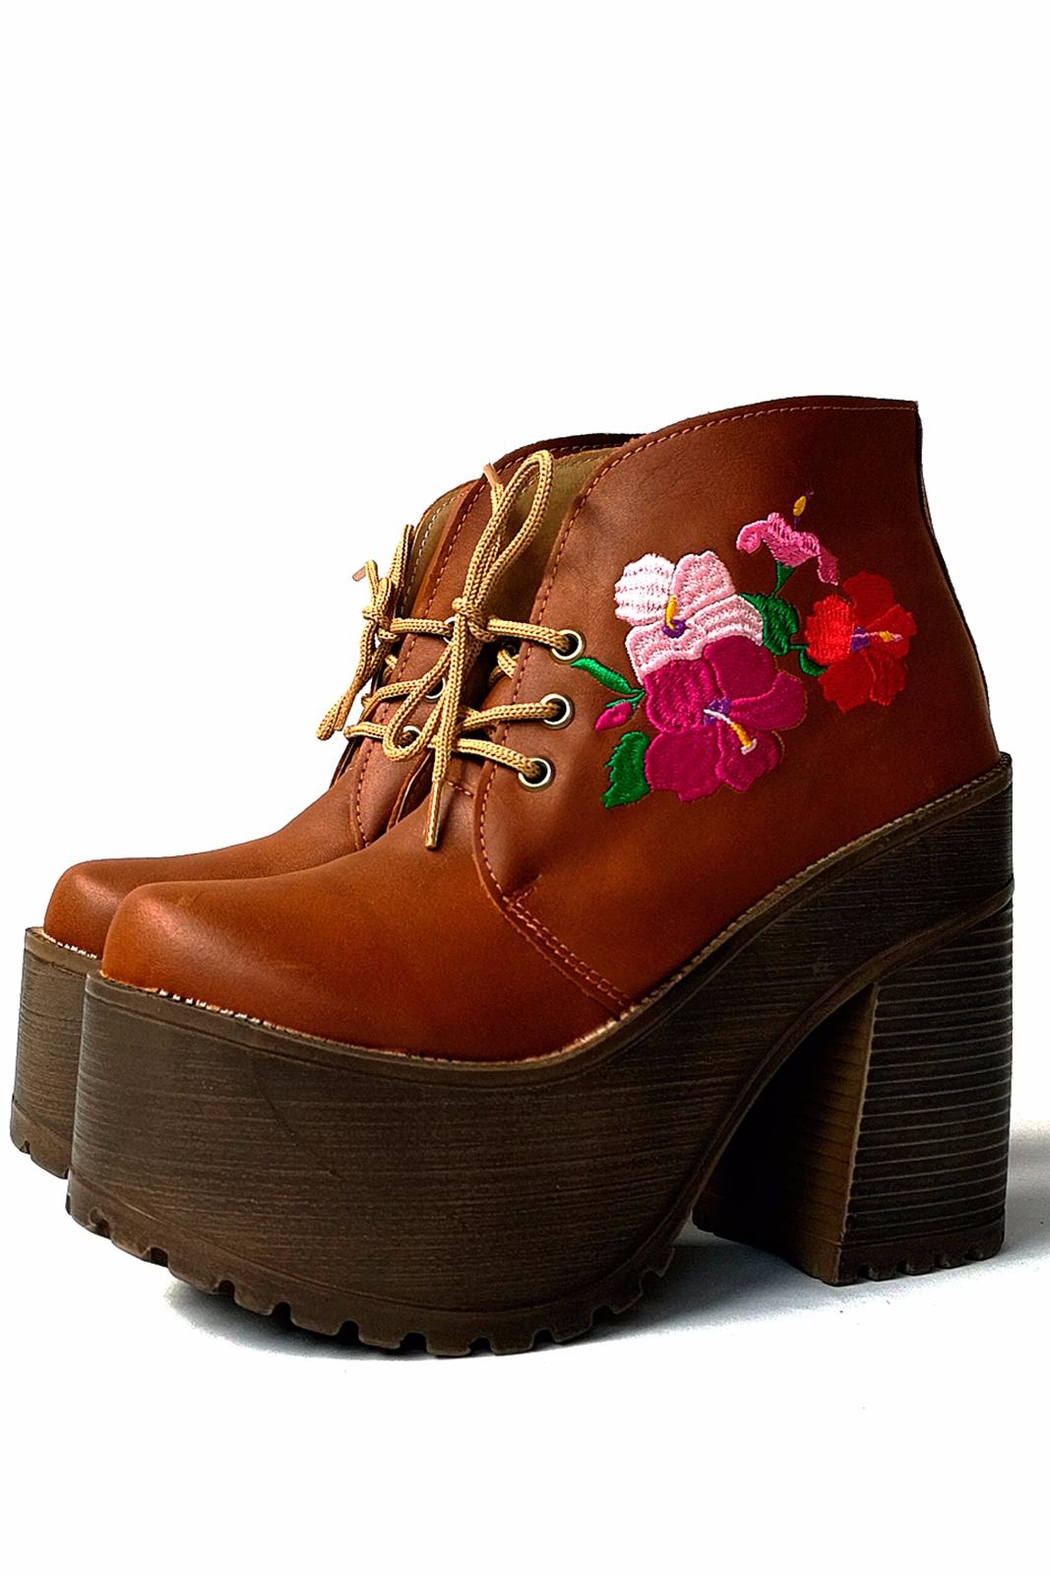 MIYE COLLAZZO Brown Embroidered Bootie - Front Full Image